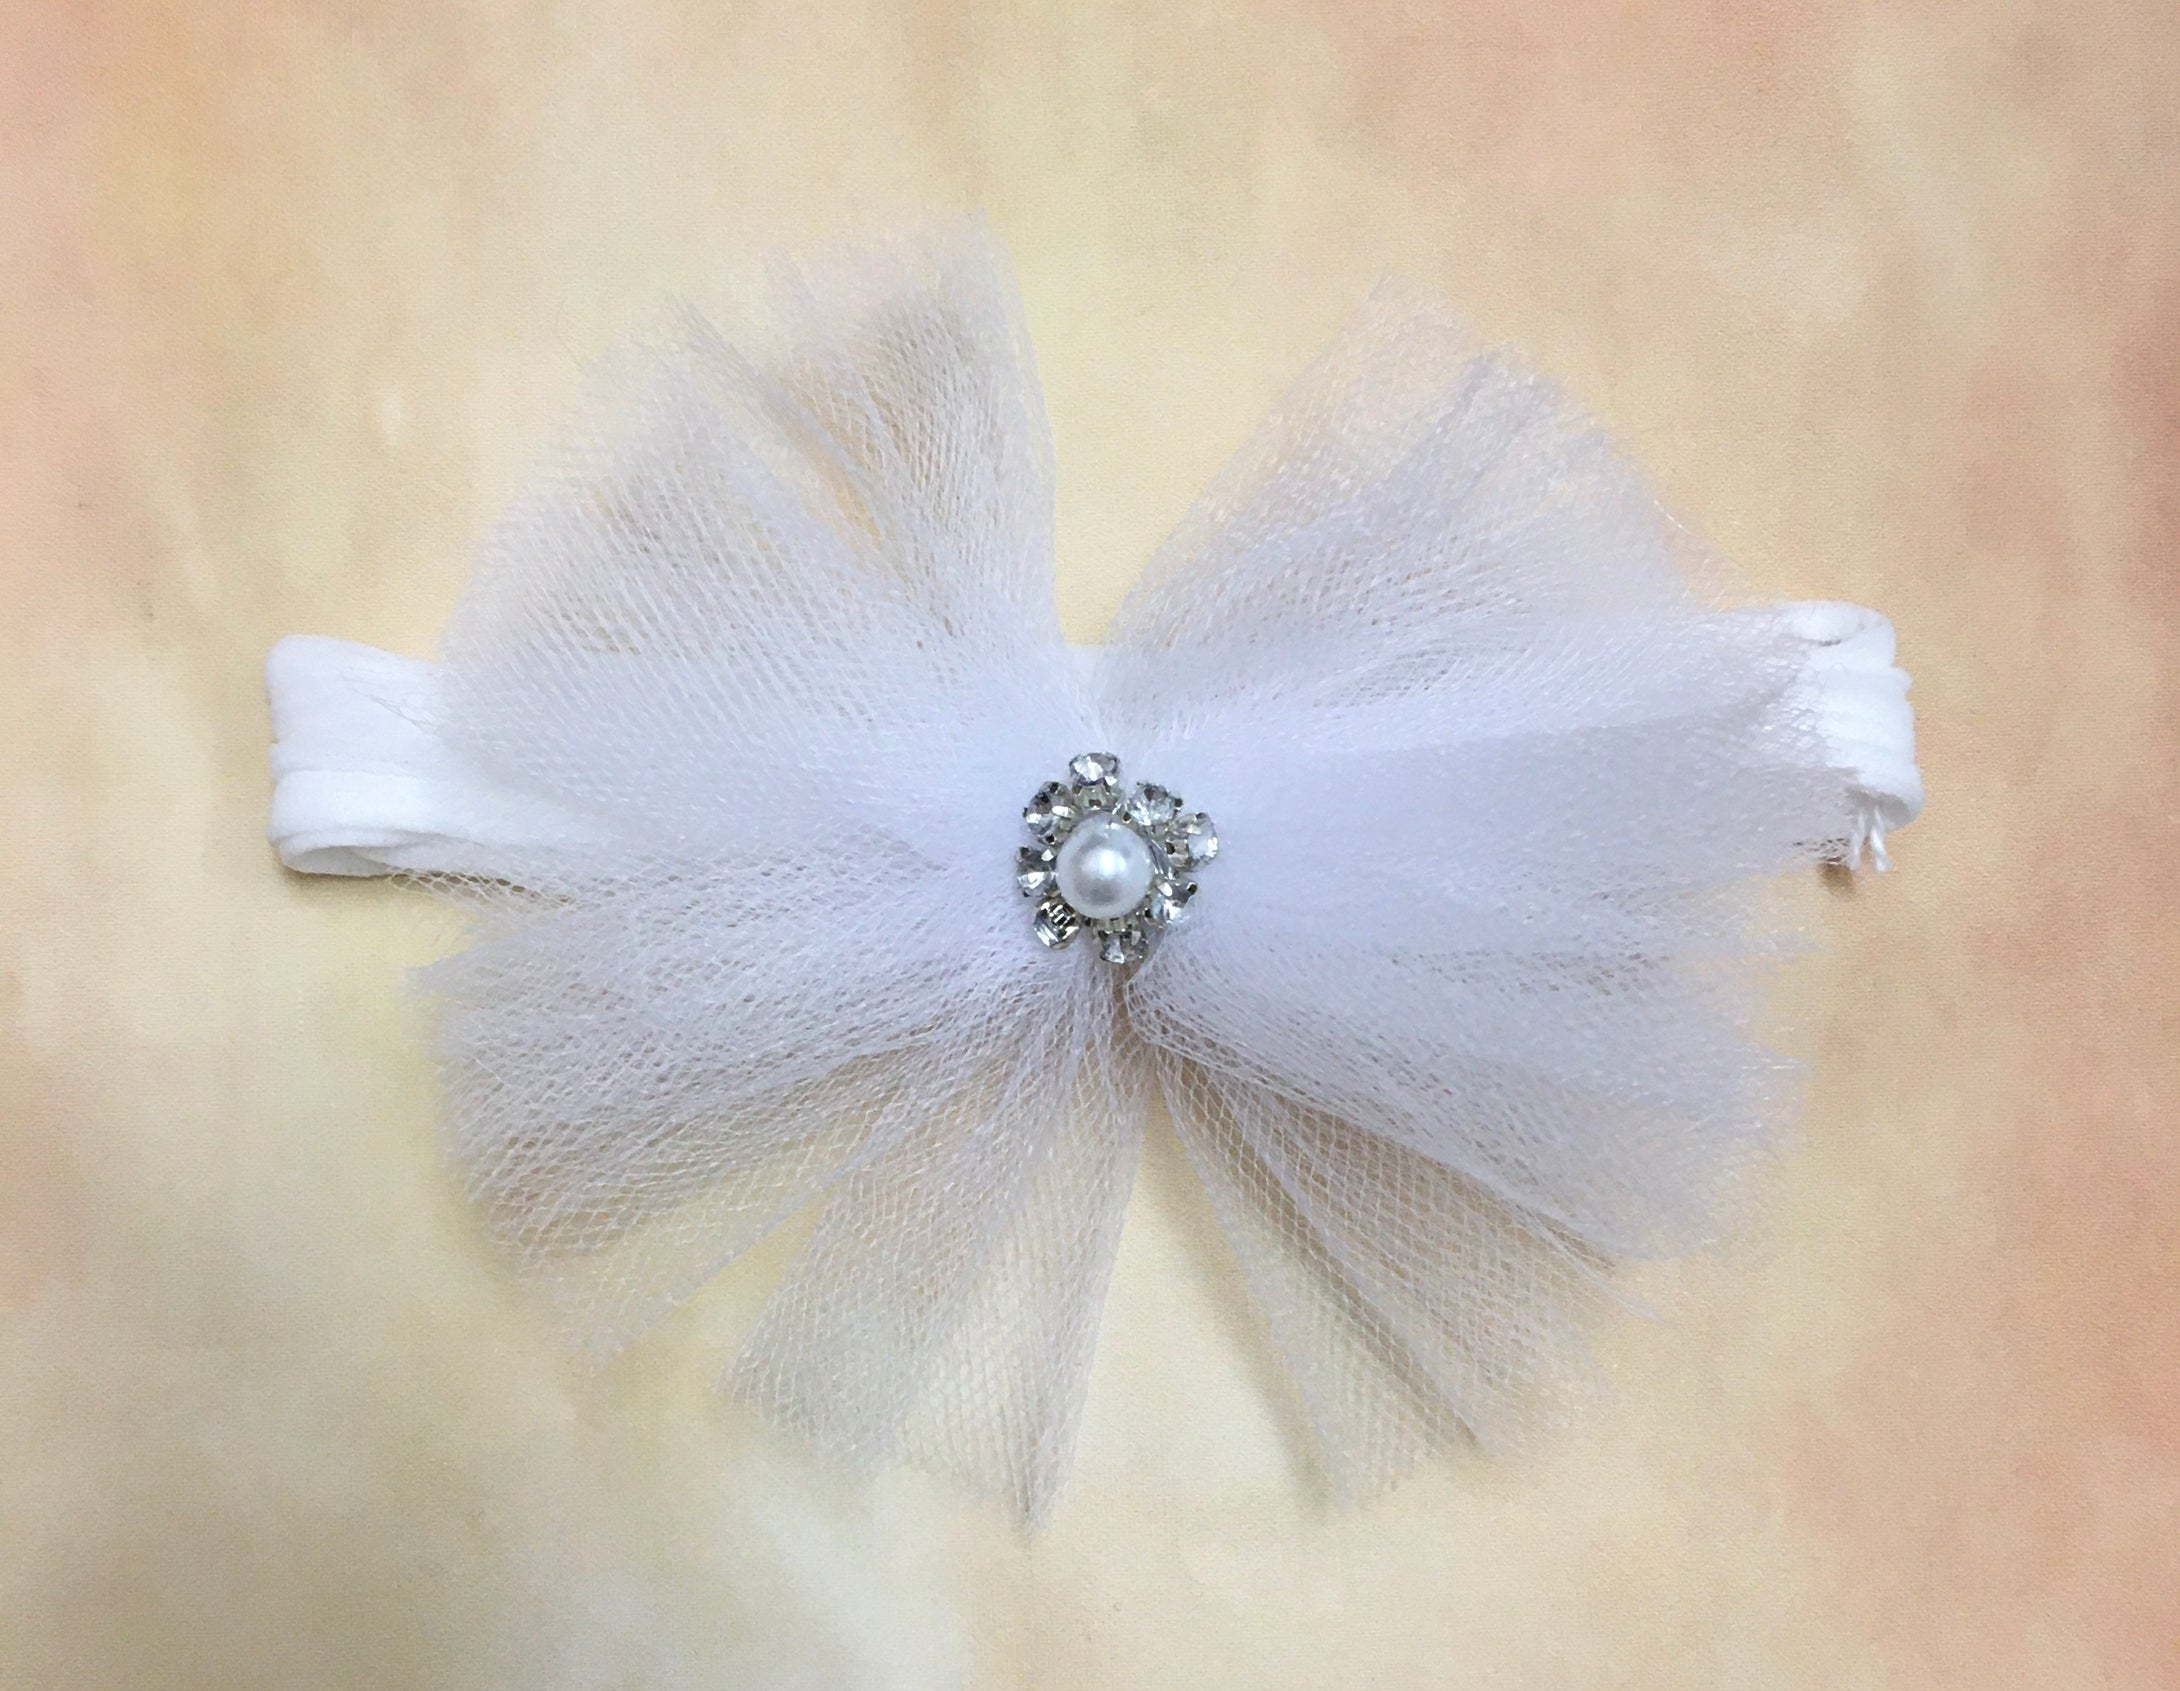 BW1 Tulle headband with rhinestone pearl center on stocking stretch band